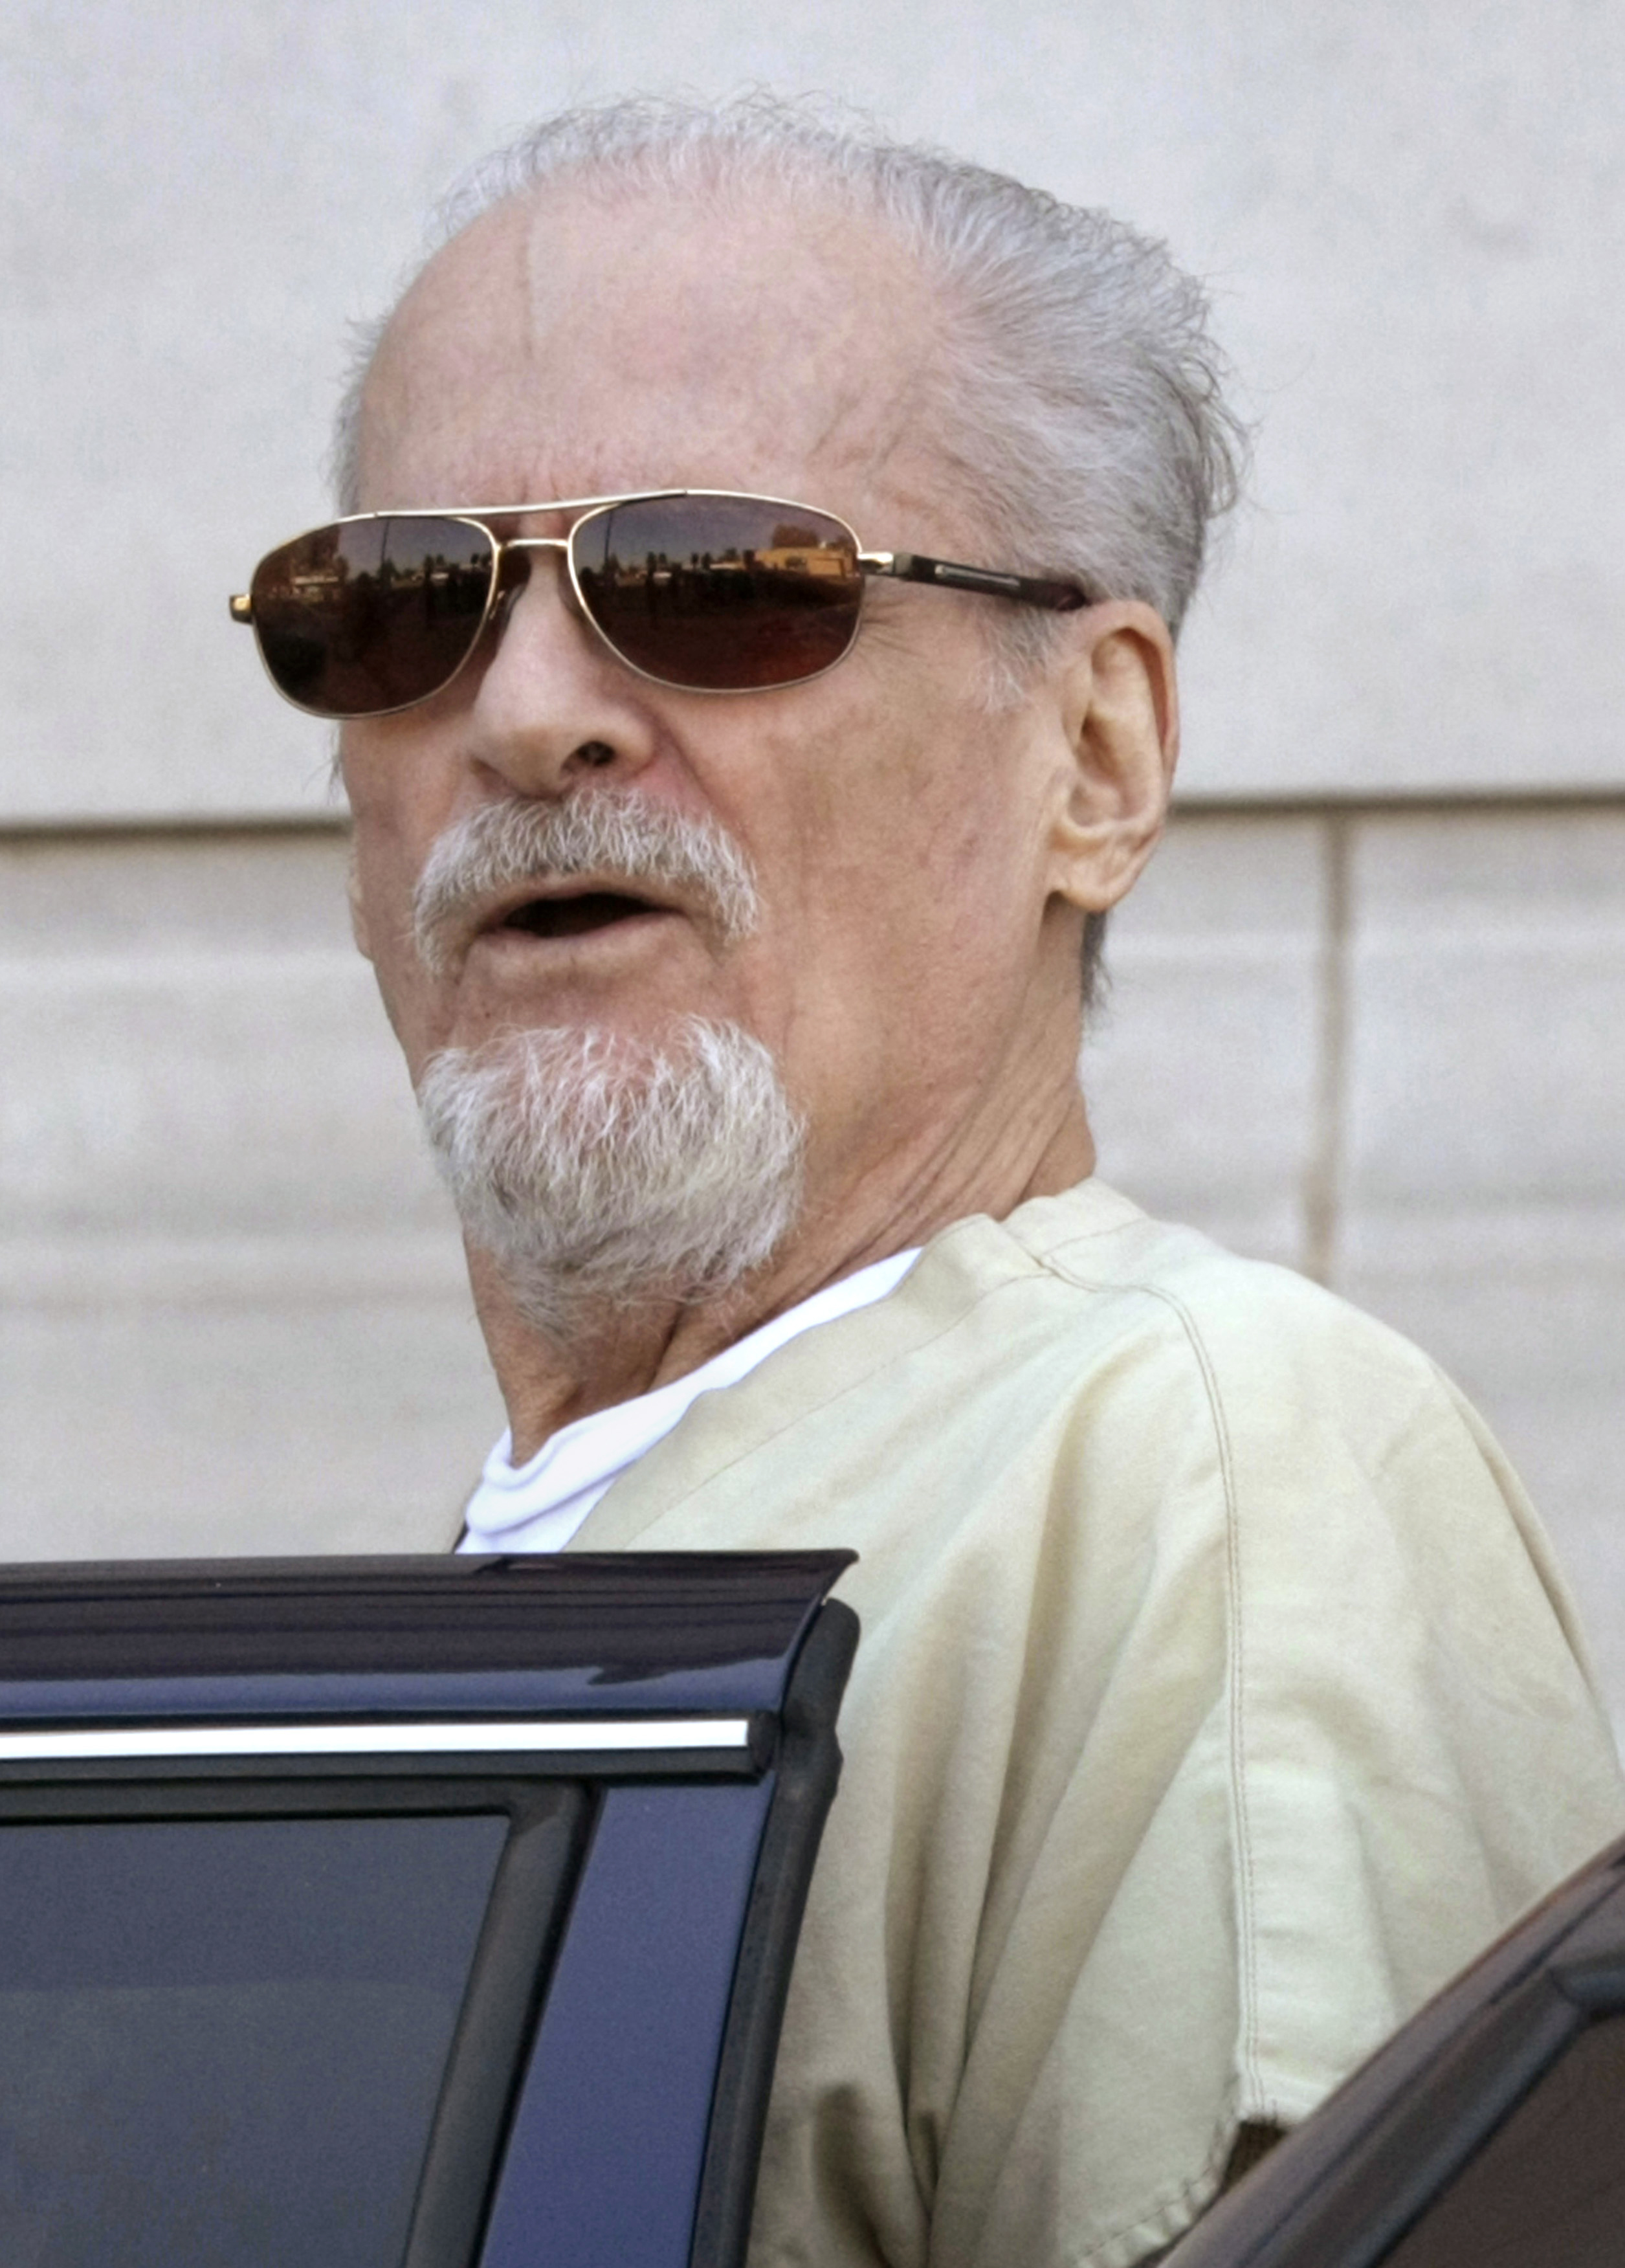 Tony Alamo talks to reporters as he is escorted to a waiting police car outside the federal courthouse in Texarkana, Ark. on July 23, 2009.